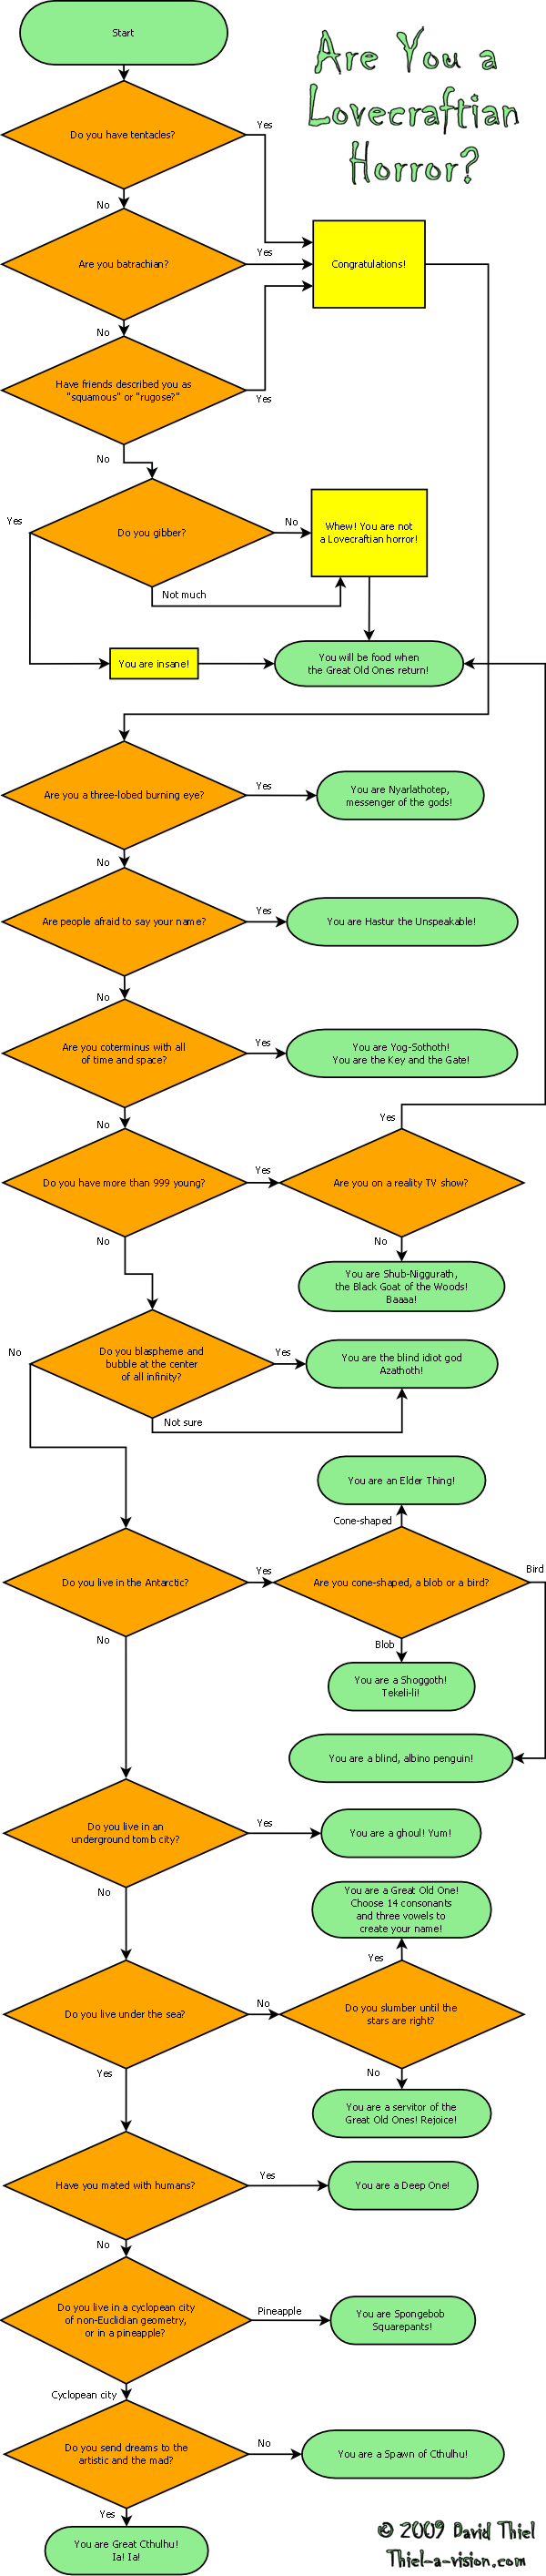 lovecraftflowchart